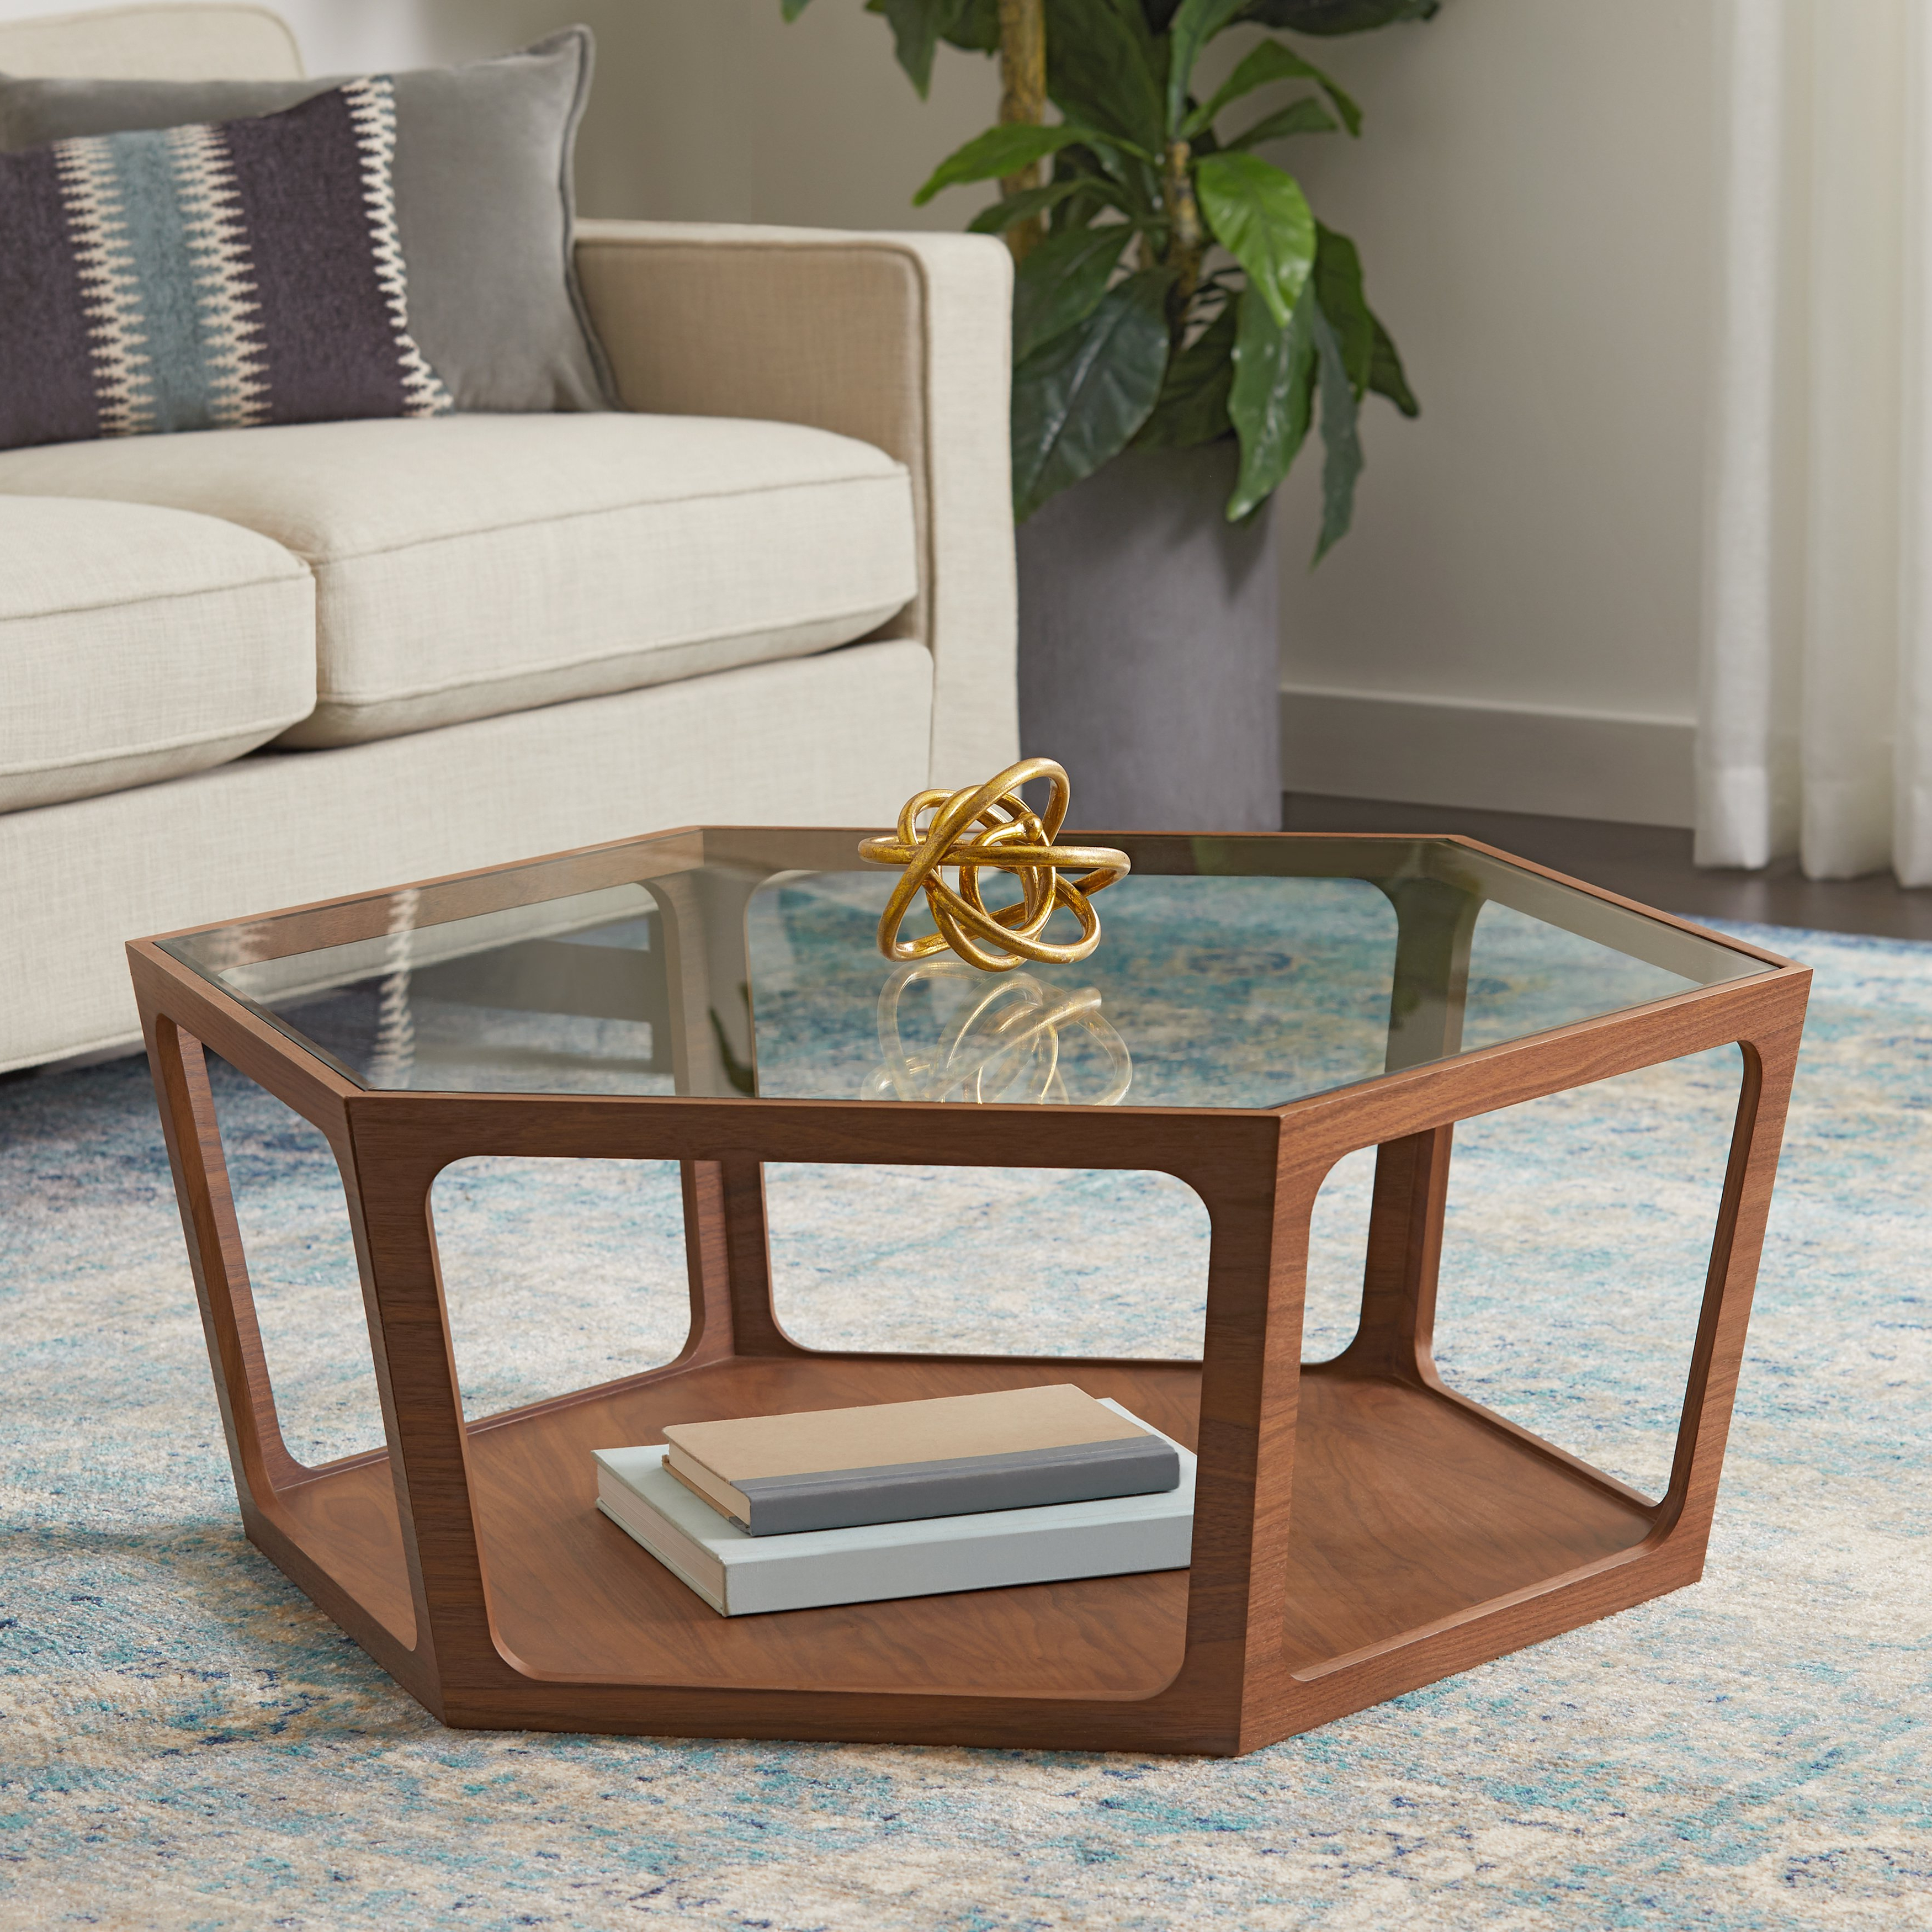 Fashionable Shop Abbyson Verona Walnut Coffee Table – On Sale – Free Shipping Regarding Verona Cocktail Tables (Gallery 6 of 20)